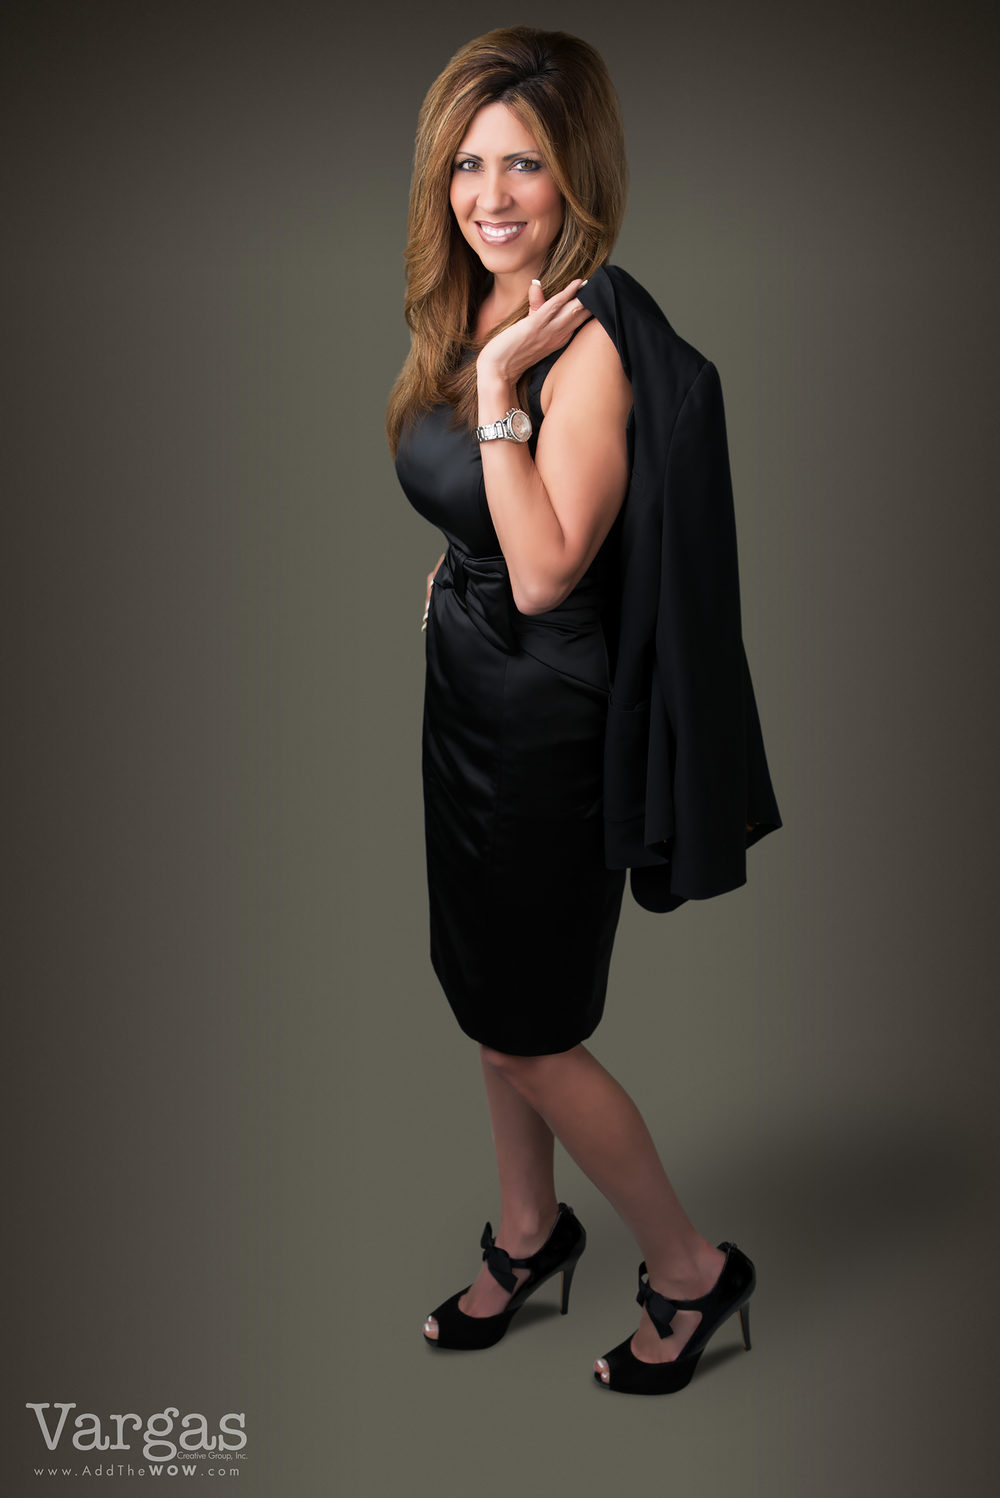 Spillman_Kellee-Real-Estate-Broker-Head-Shot-Portrait-2.png